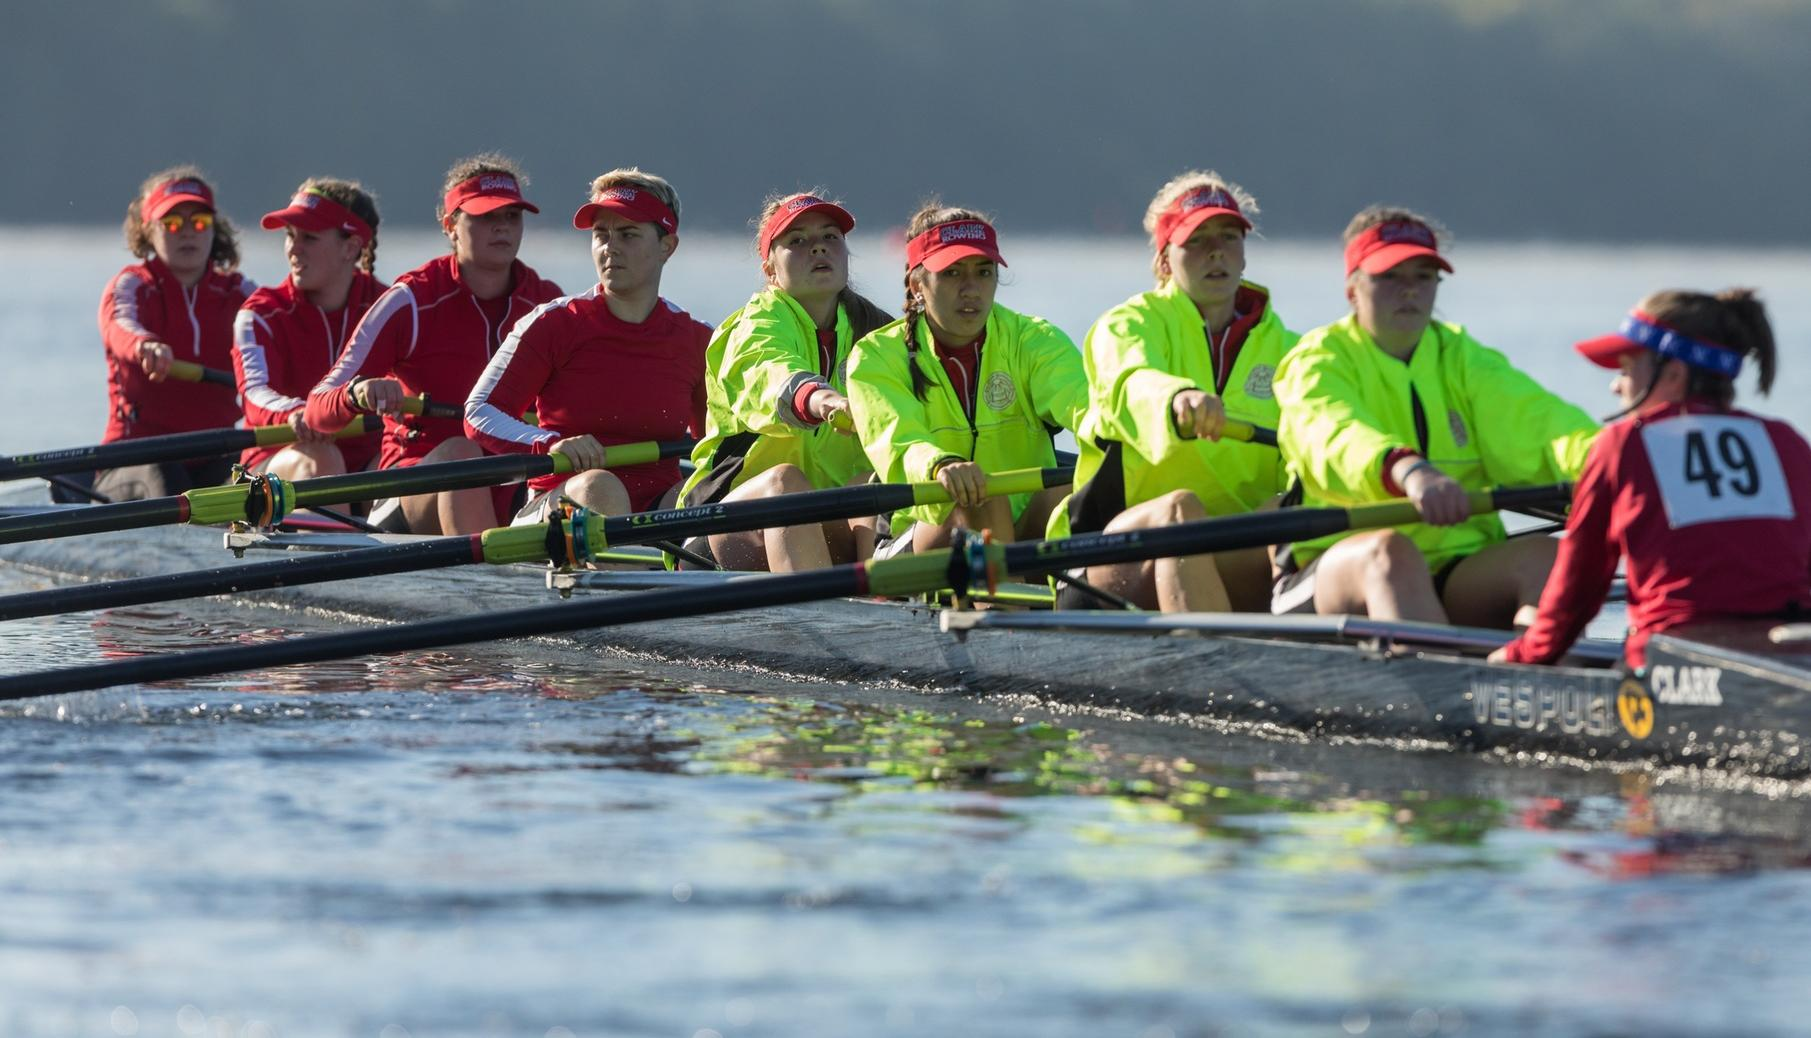 Rowing Races at New England Championship